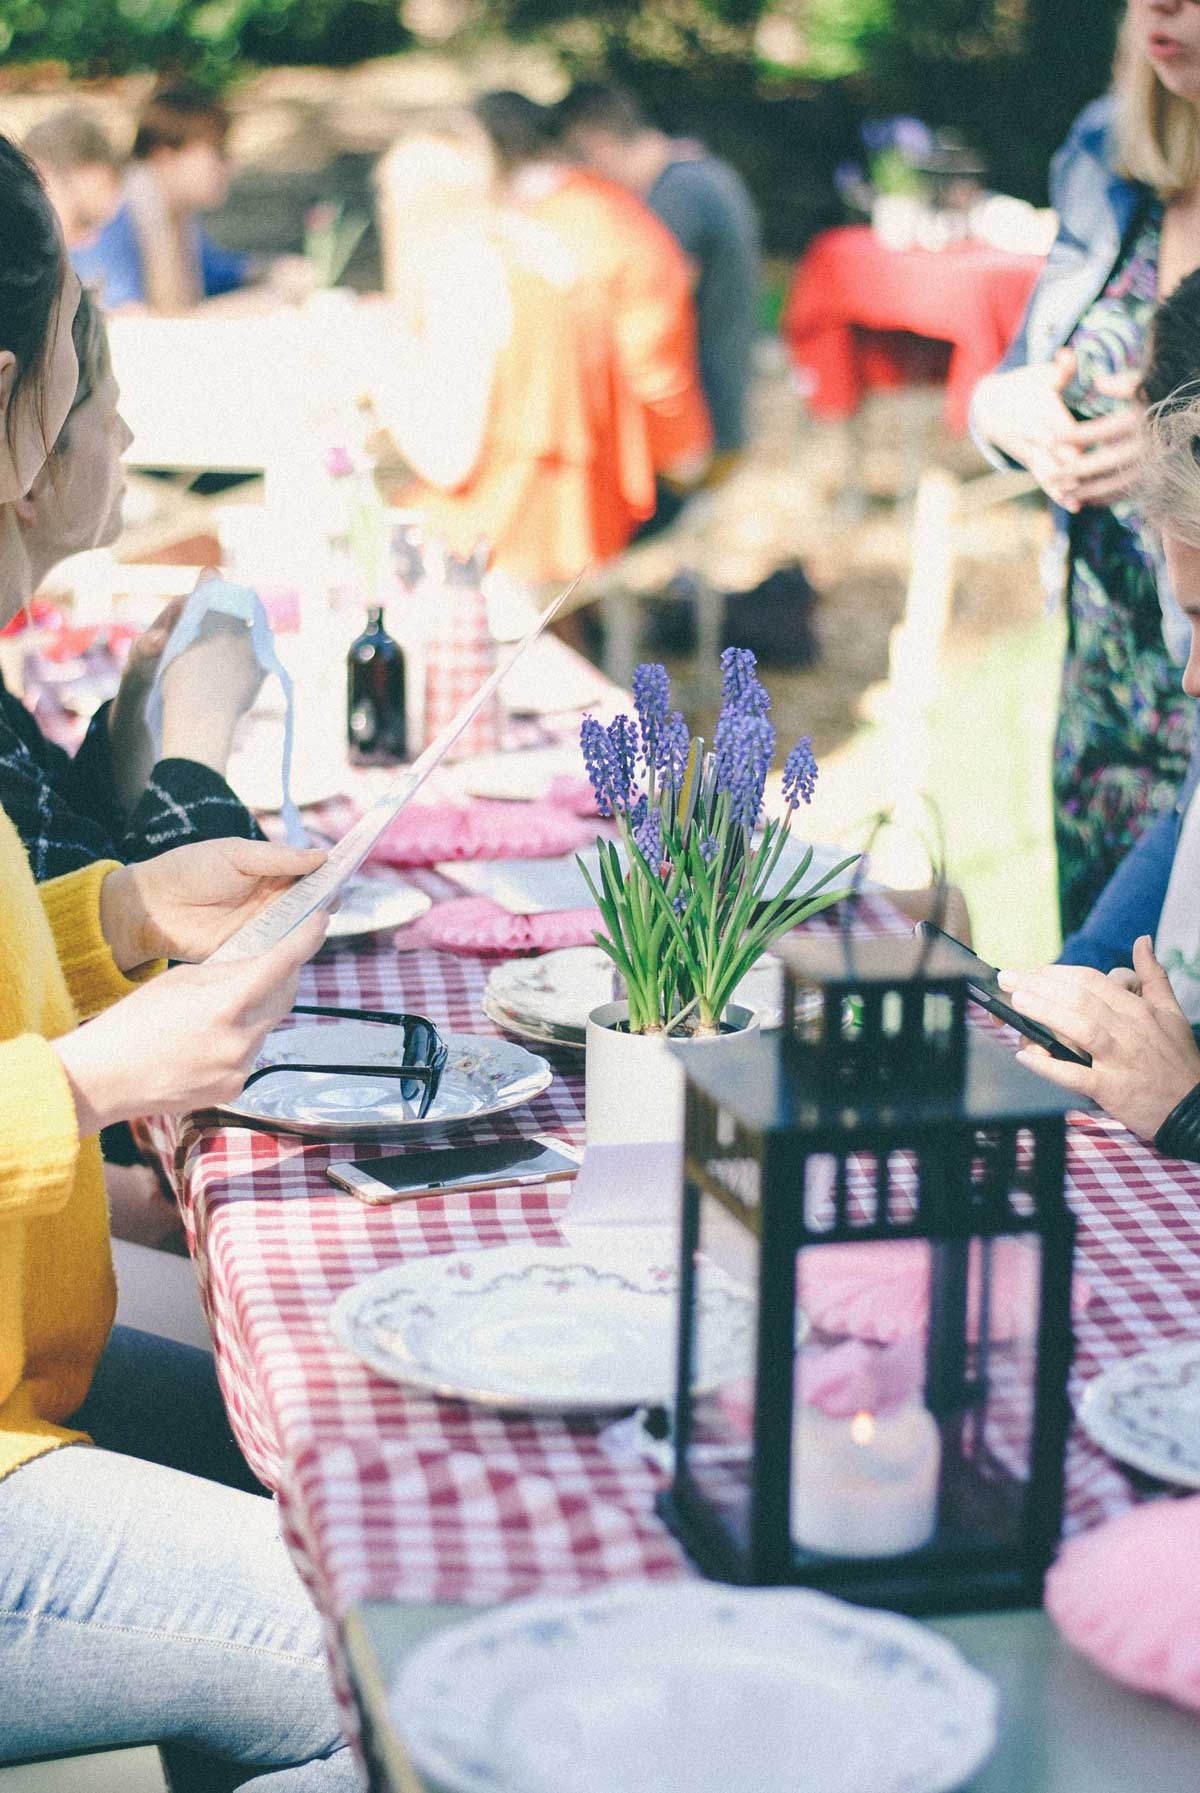 How I Found a Solution to My Social Eating Fears